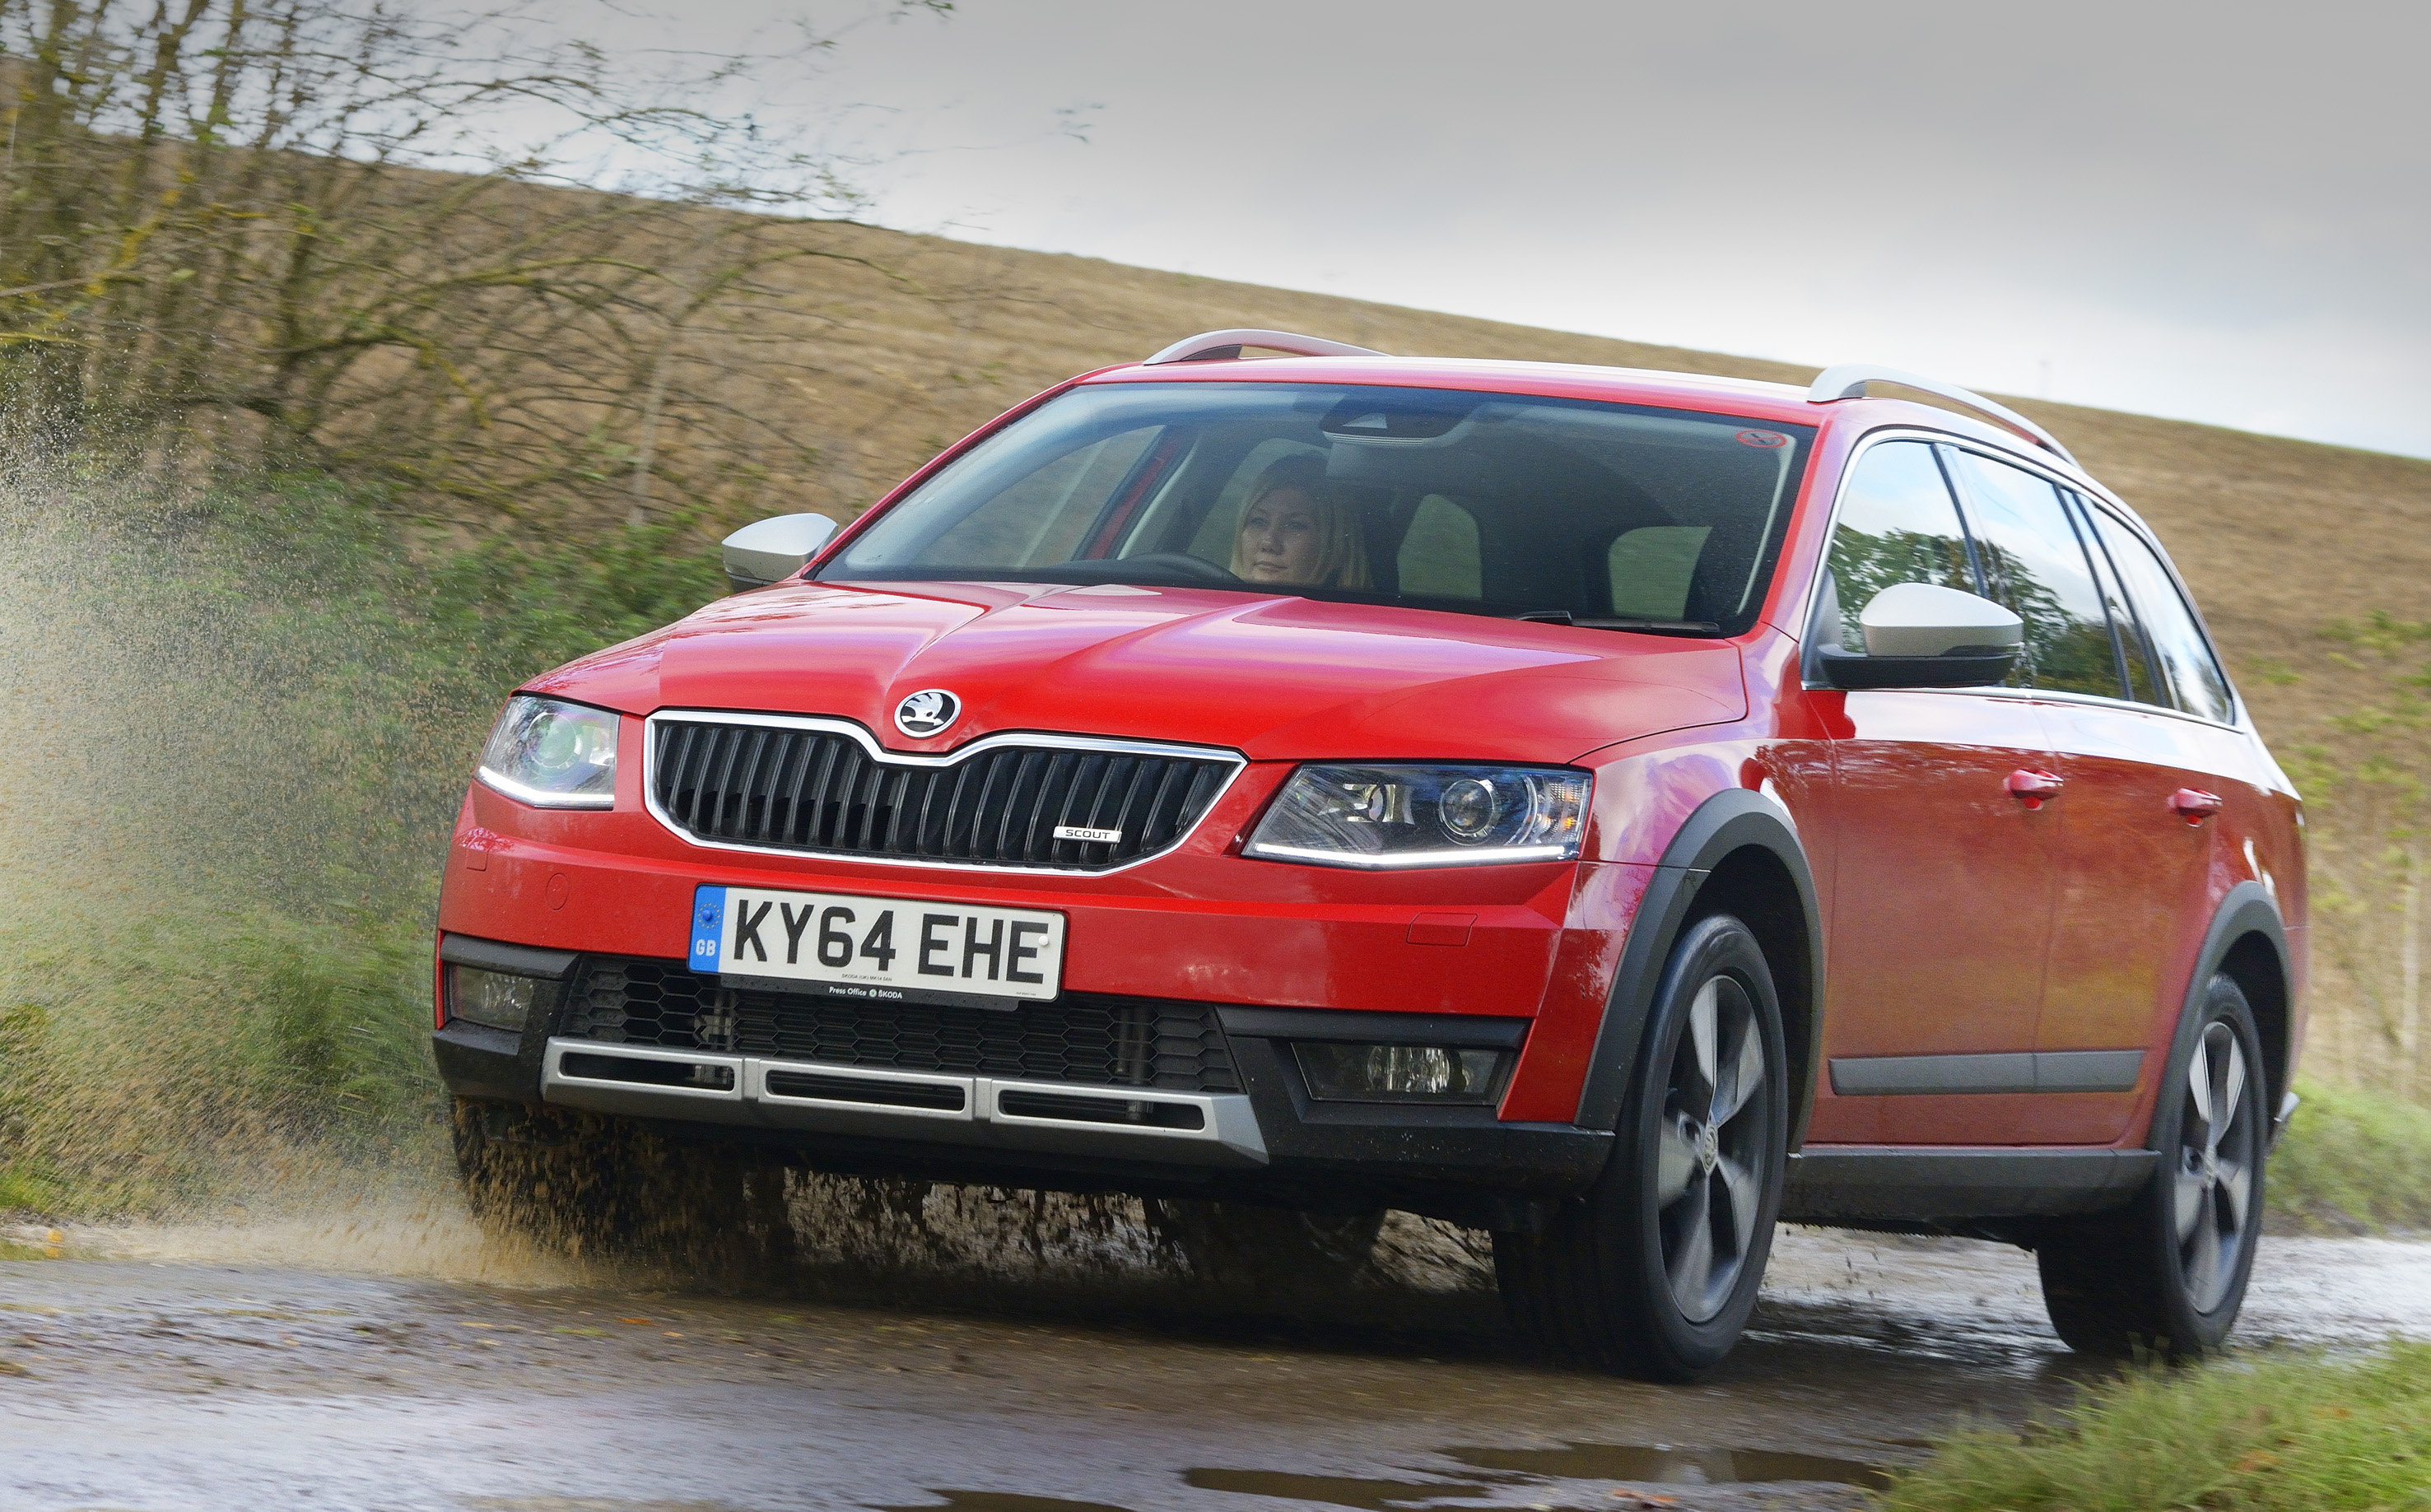 new skoda octavia scout has 4x4 abilities. Black Bedroom Furniture Sets. Home Design Ideas